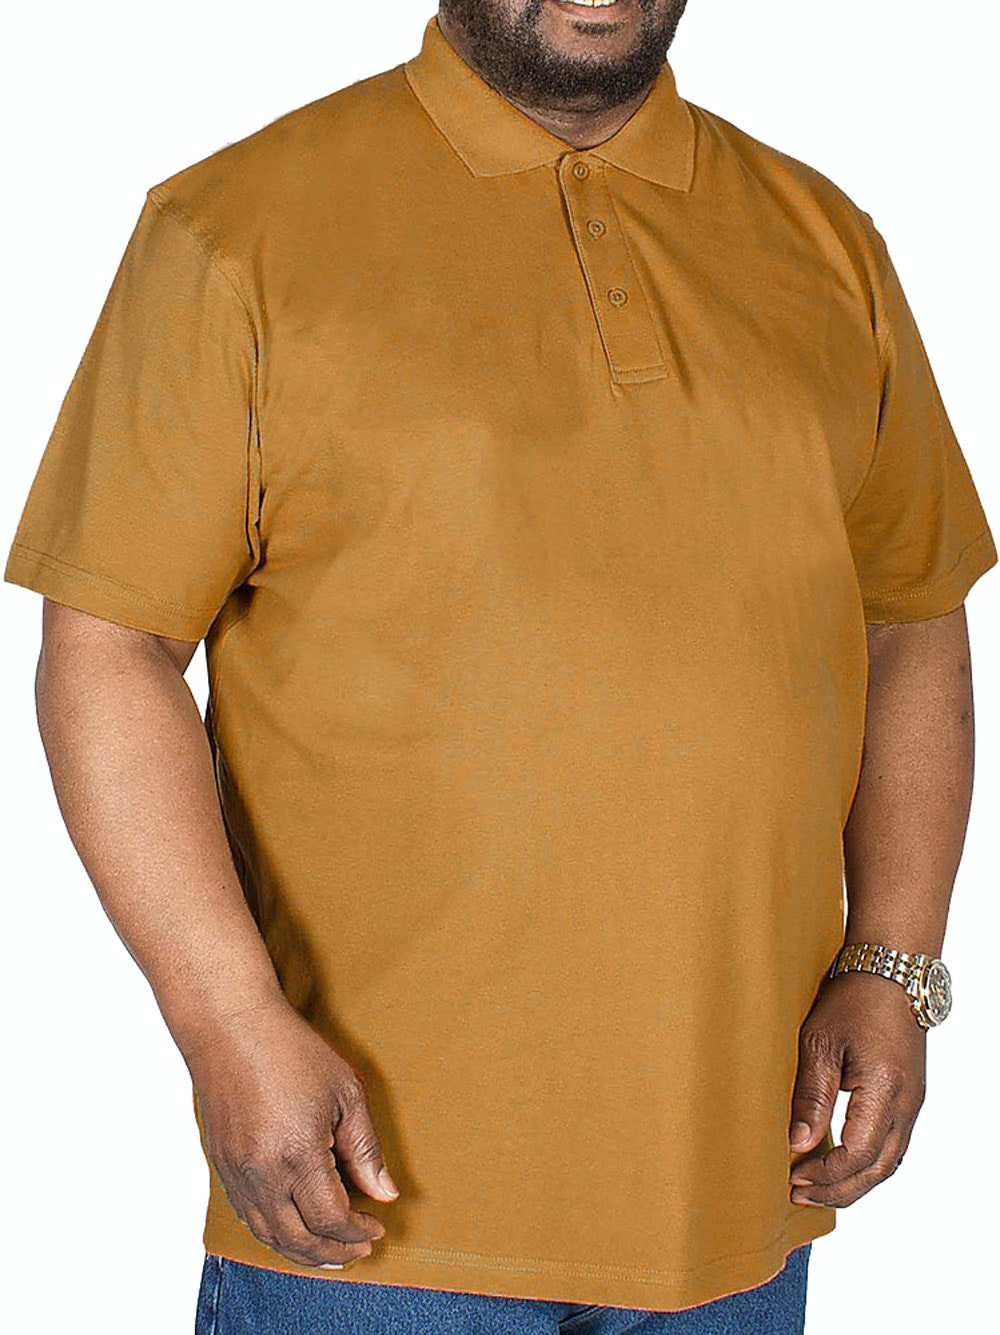 Bigdude Plain Polo Shirt Brown